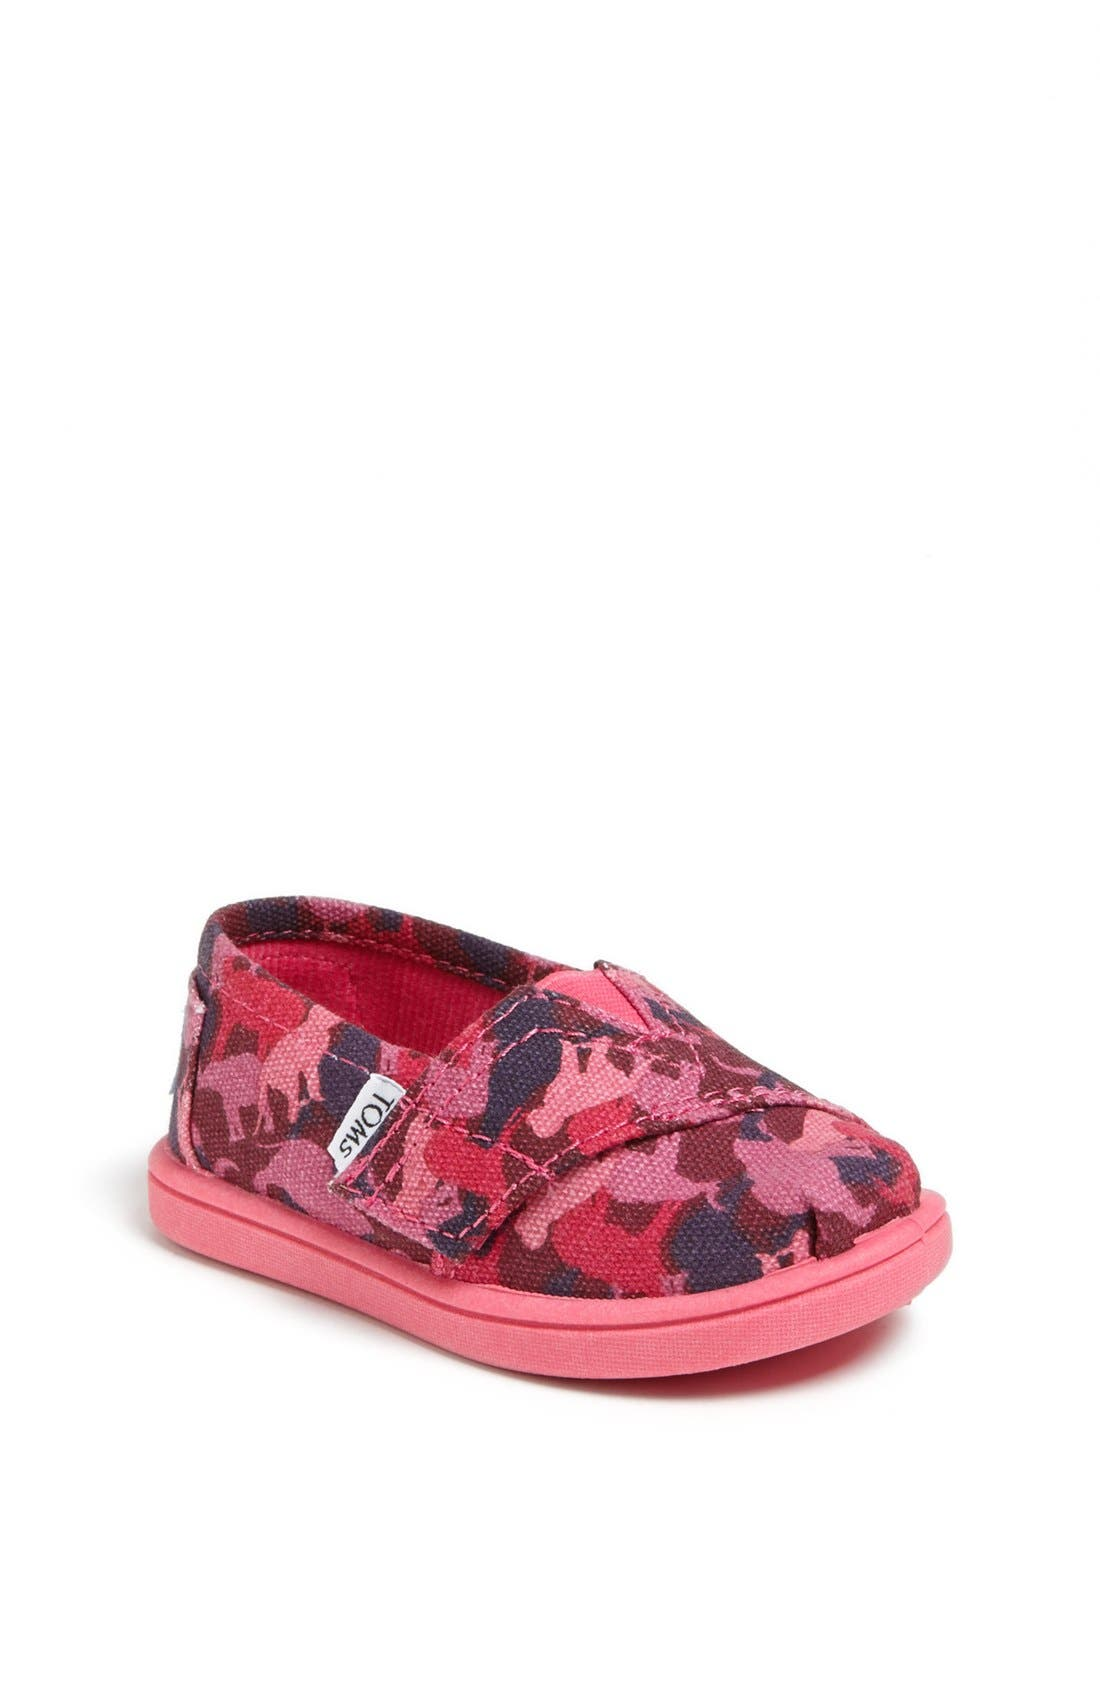 Alternate Image 1 Selected - TOMS 'Classic Tiny - Animal Camo' Slip-On (Baby, Walker & Toddler)